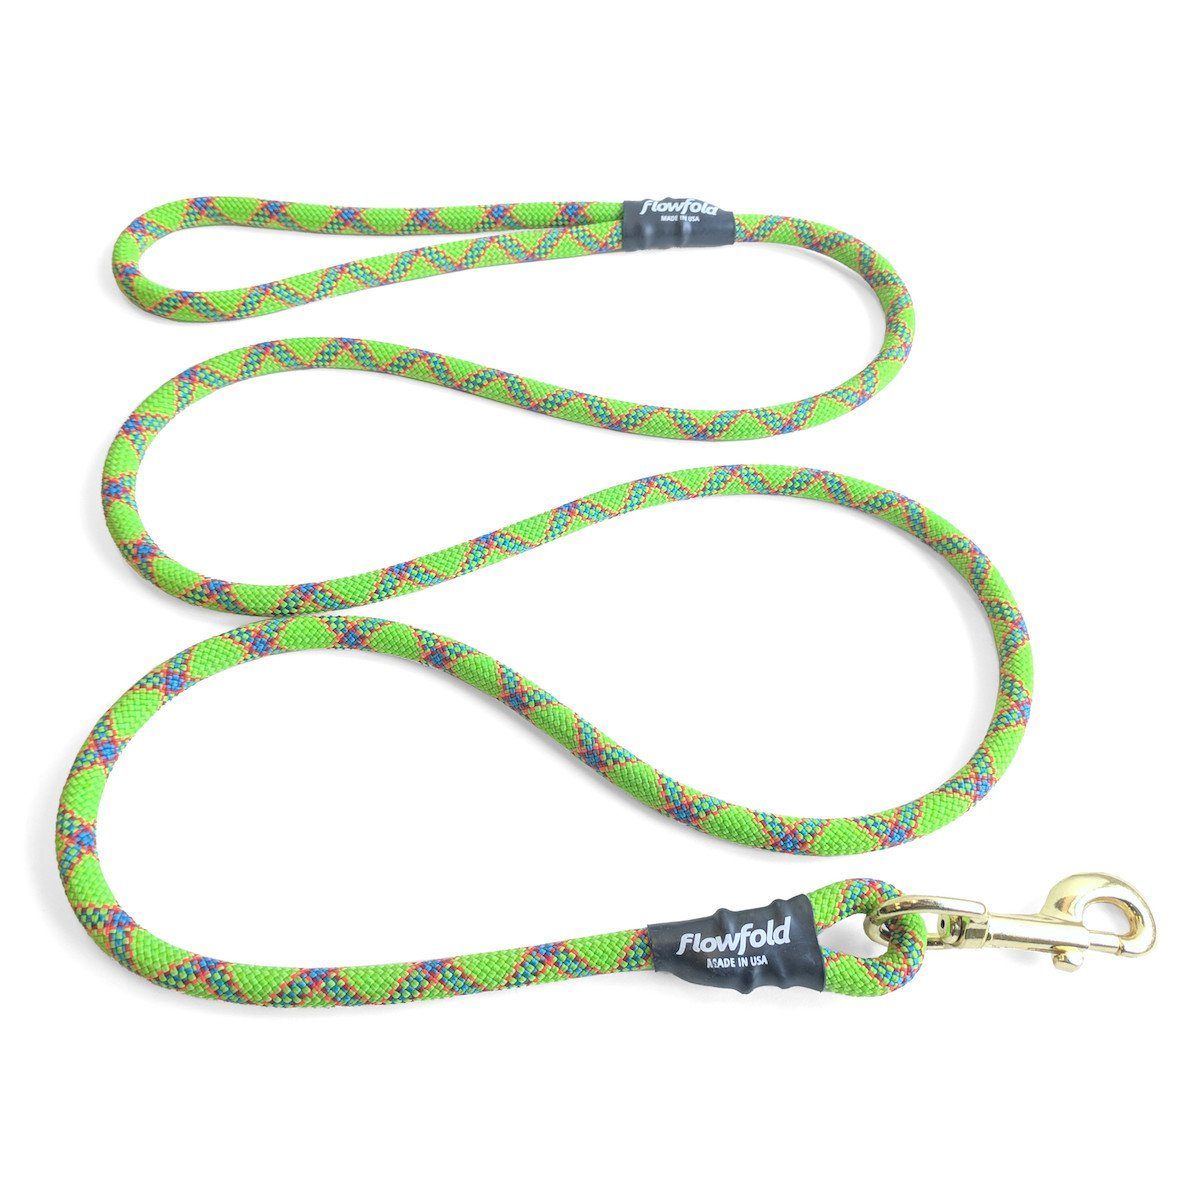 Green 6 feet Green 6 feet Flowfold Trailmate Dog Leash Strong Climbing Rope Highly Durable and Ultra Lightweight Weather Resistant Made in USA